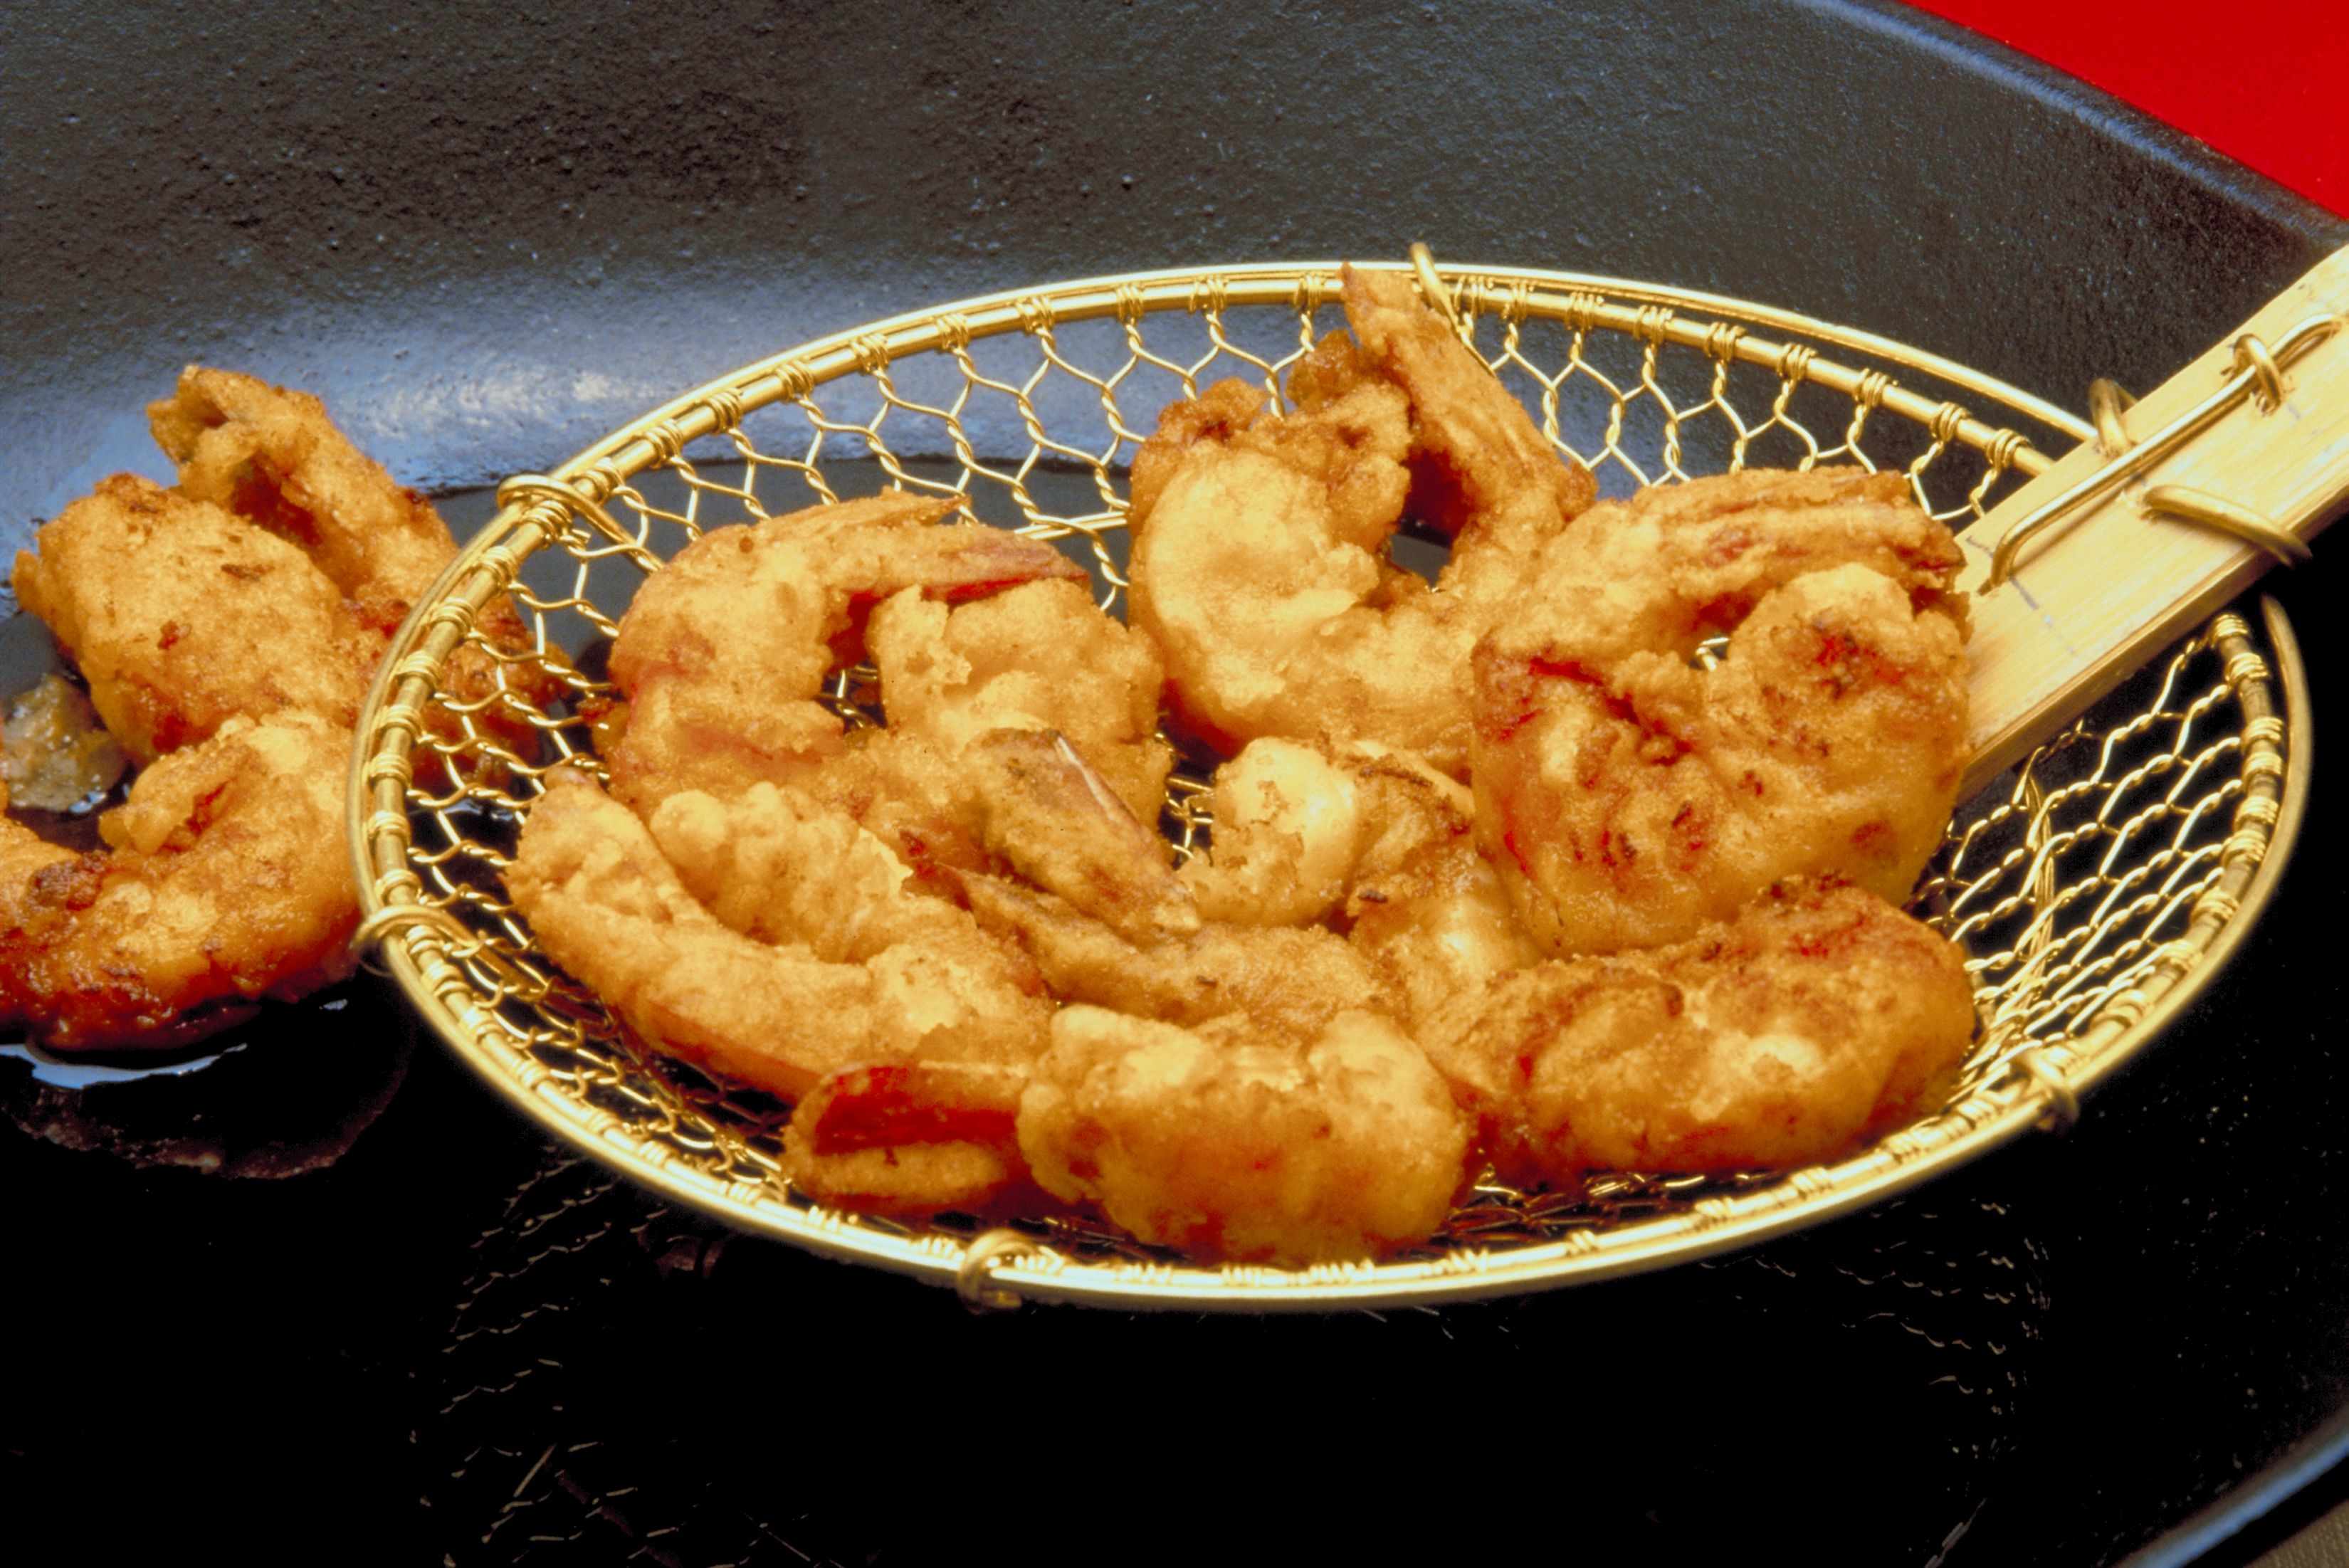 Limit fried shrimp to an occasional treat.